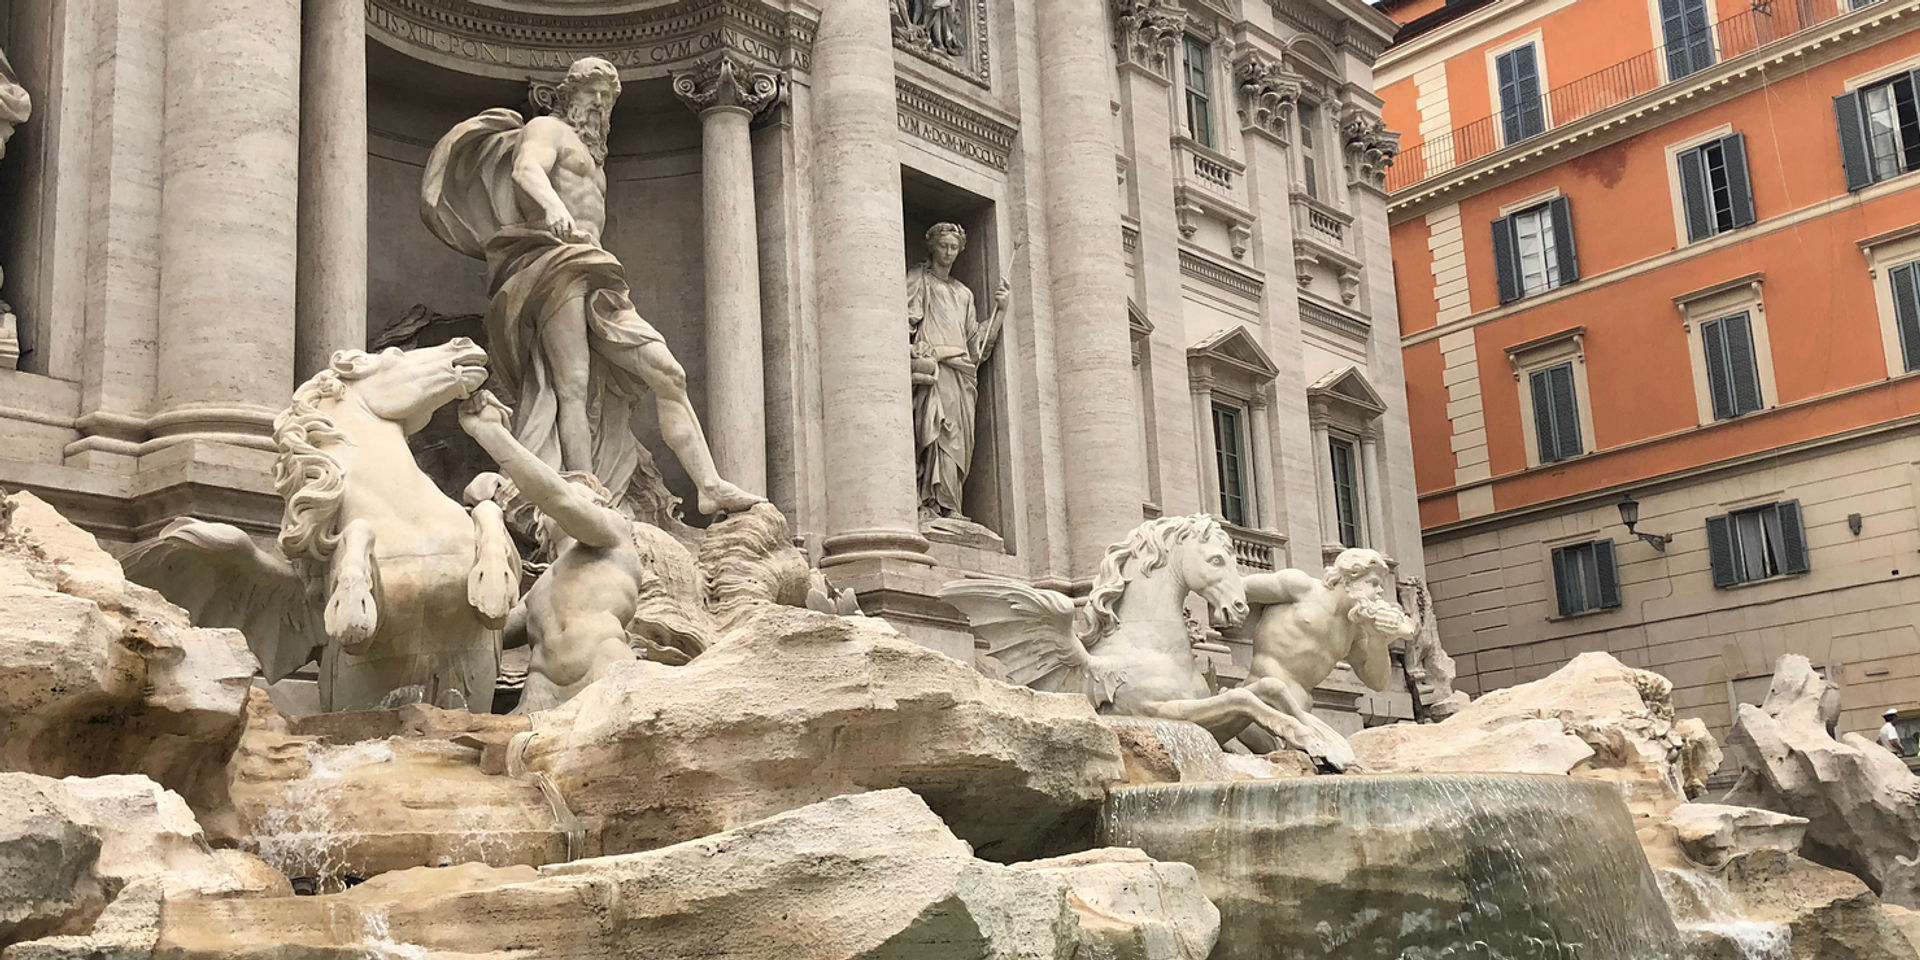 American Academy and a Taste of Rome